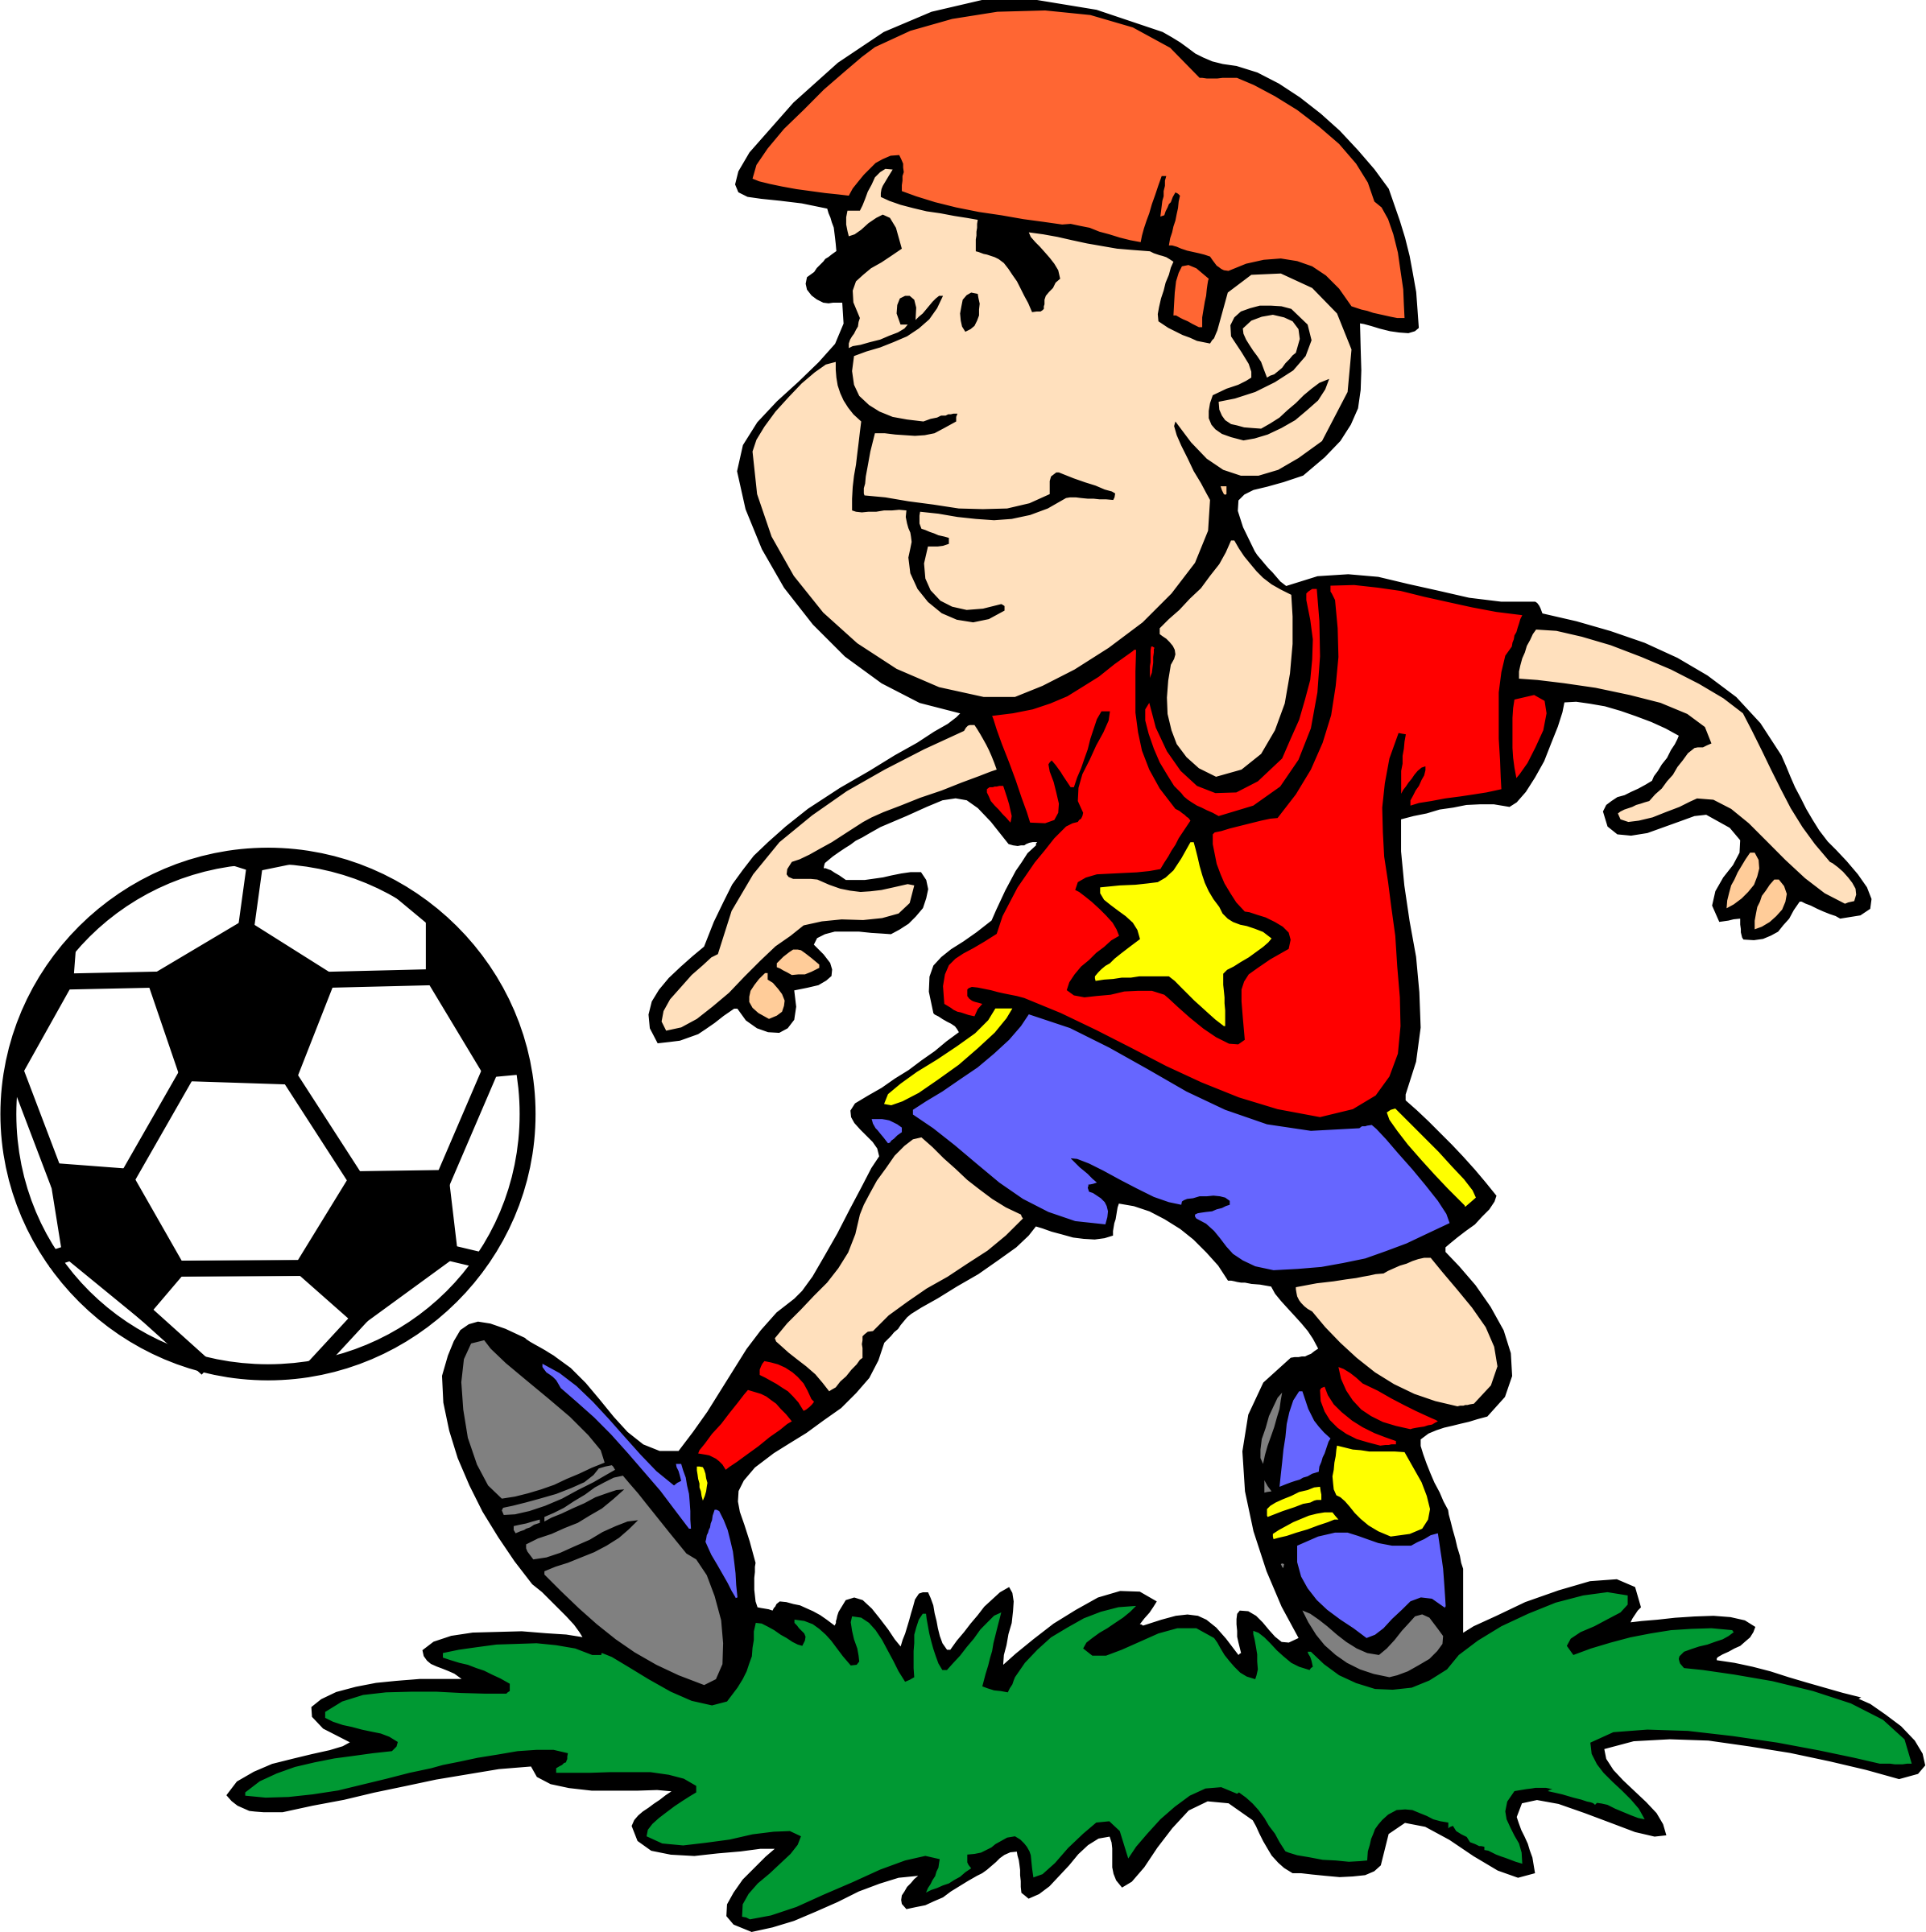 clipart free stock Player big image png. Playing clipart soccer kick